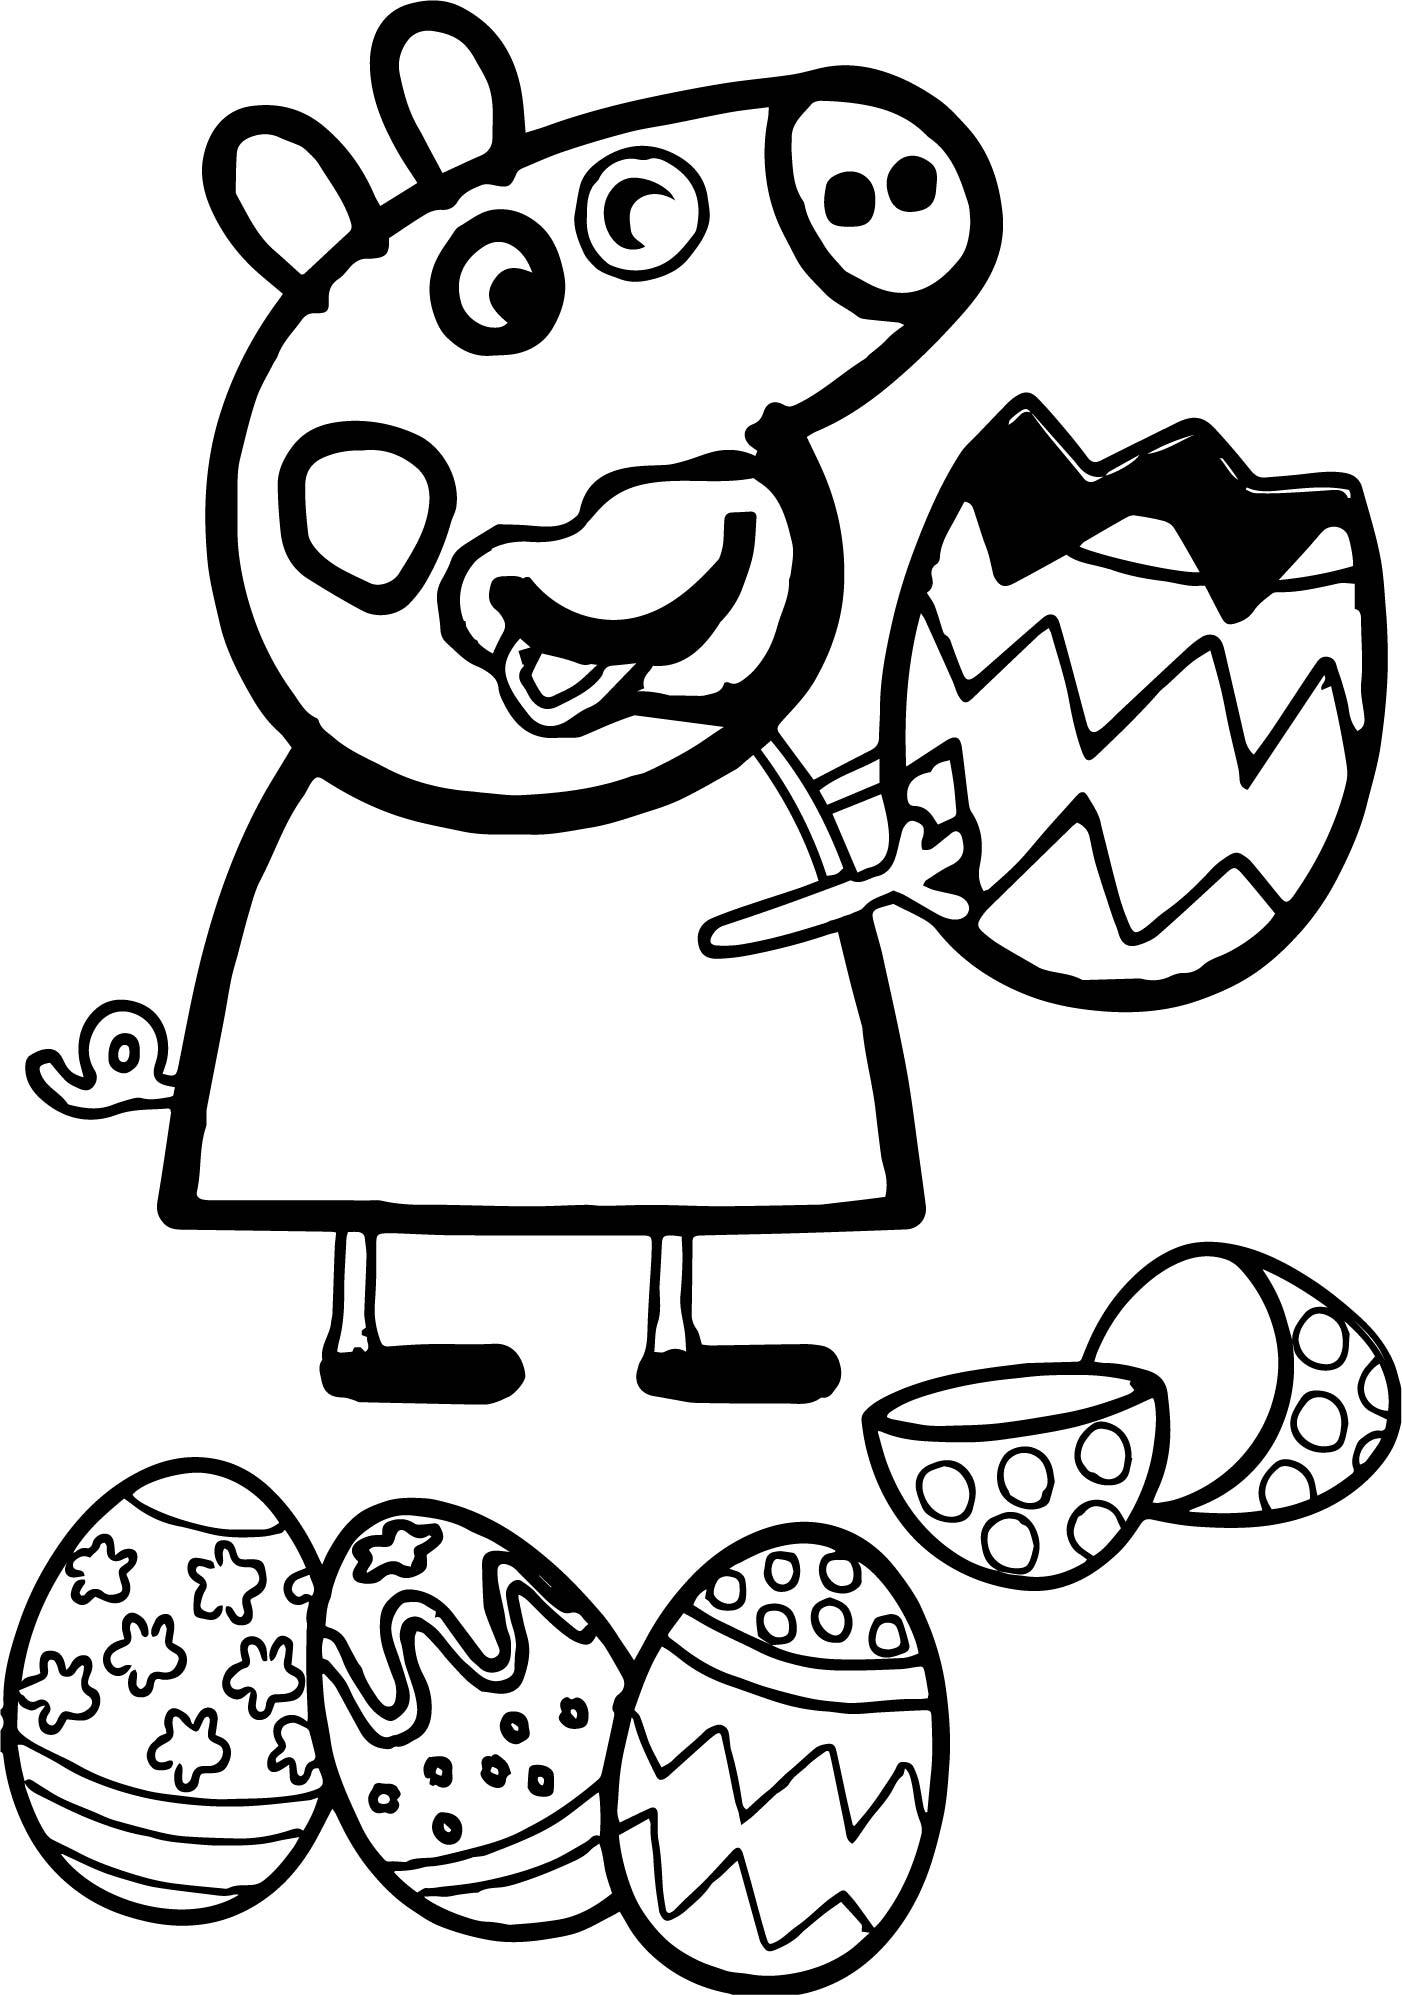 1402x1995 Astonishing Peppa Pig Funny Eating Easter Egg Coloring Page